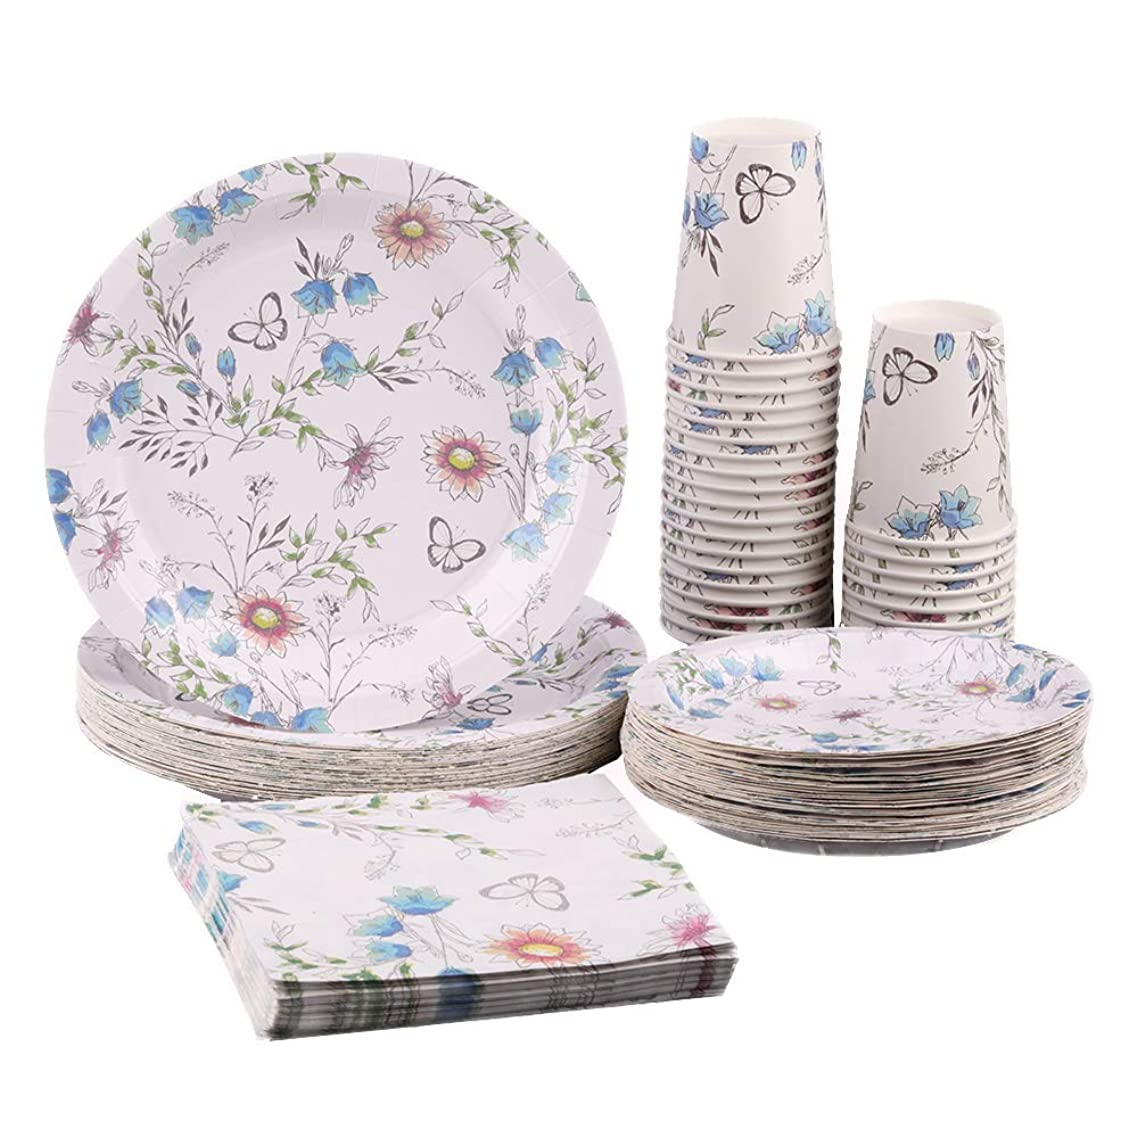 Ottin Tea Party Paper Tableware Set for 36 Guests 9'' Dinner Plates 7'' Dessert Plates 6.5'' Paper Napkins 9oz Paper Cups Disposable Vintage Floral Dinnerware for Wedding Birthday Garden Party